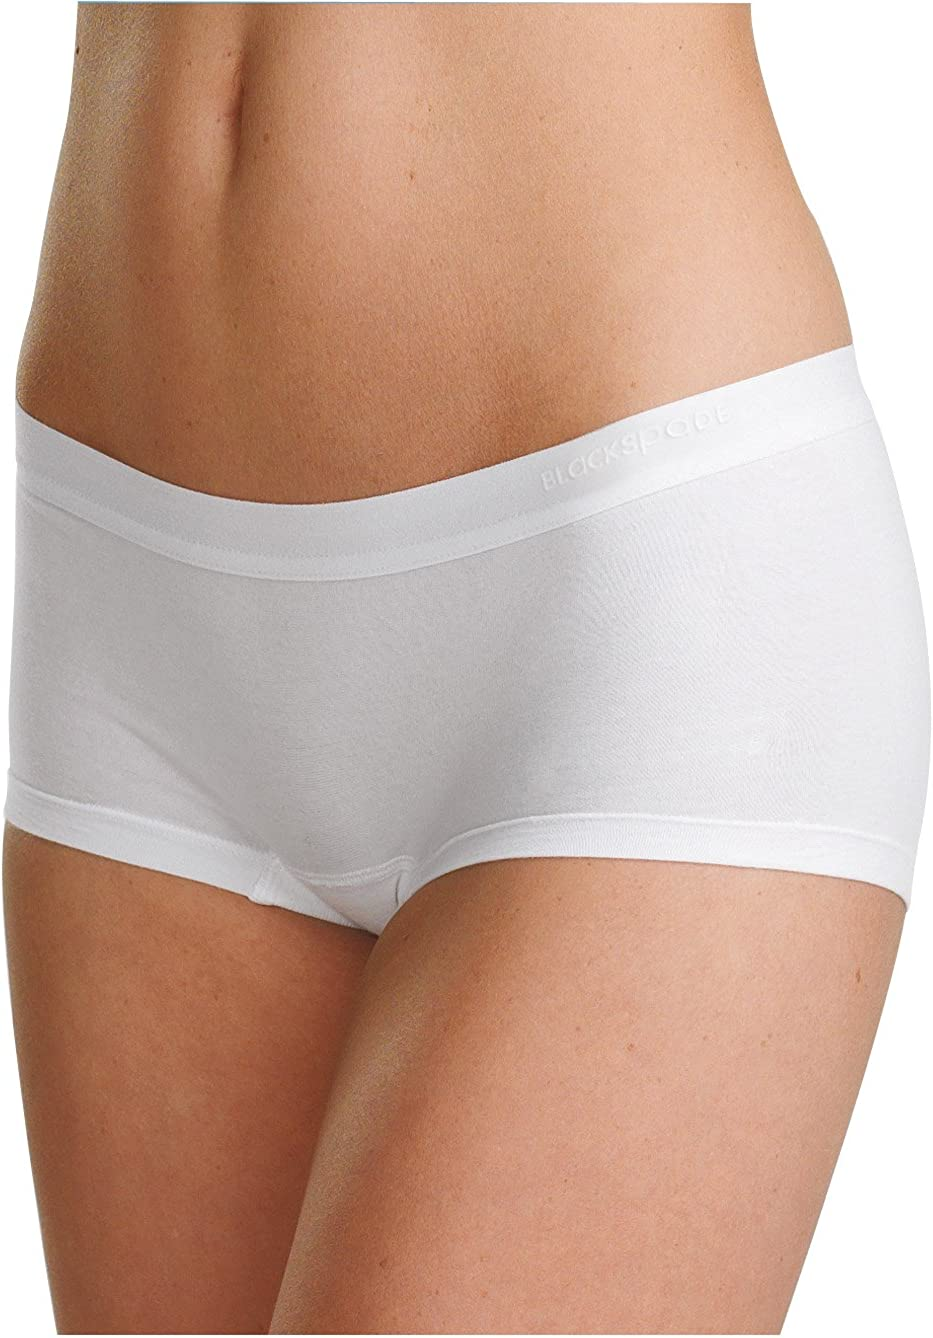 Womens Seamless Hipster Shorts Double Comfort Cotton Knicker Briefs 3 Colours